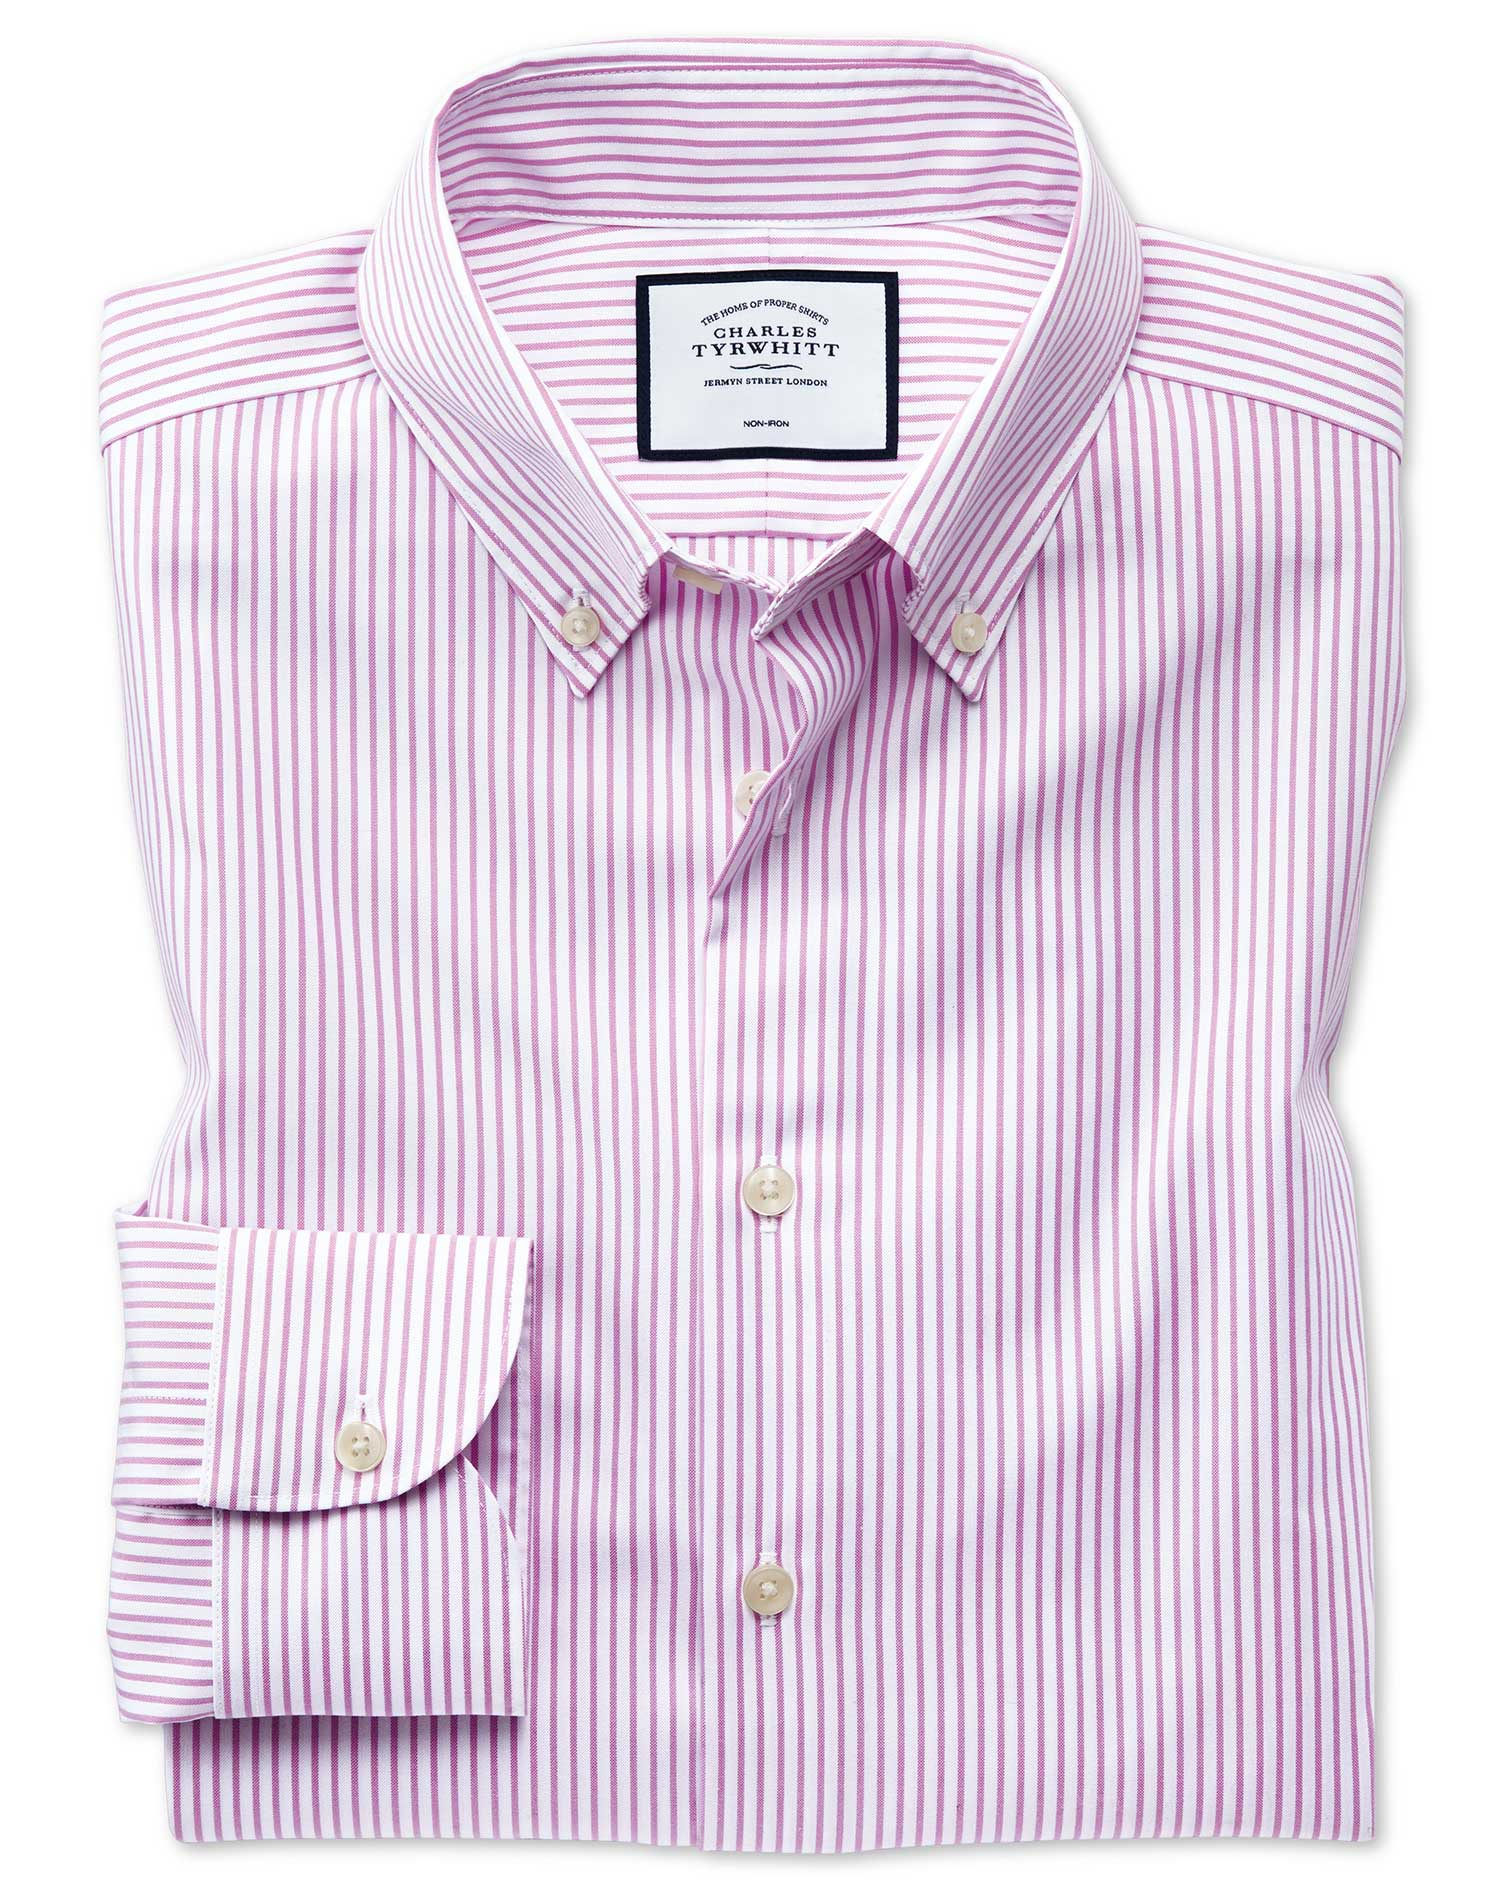 Classic Fit Business Casual Non-Iron Button-Down Pink Stripe Cotton Formal Shirt Single Cuff Size 15